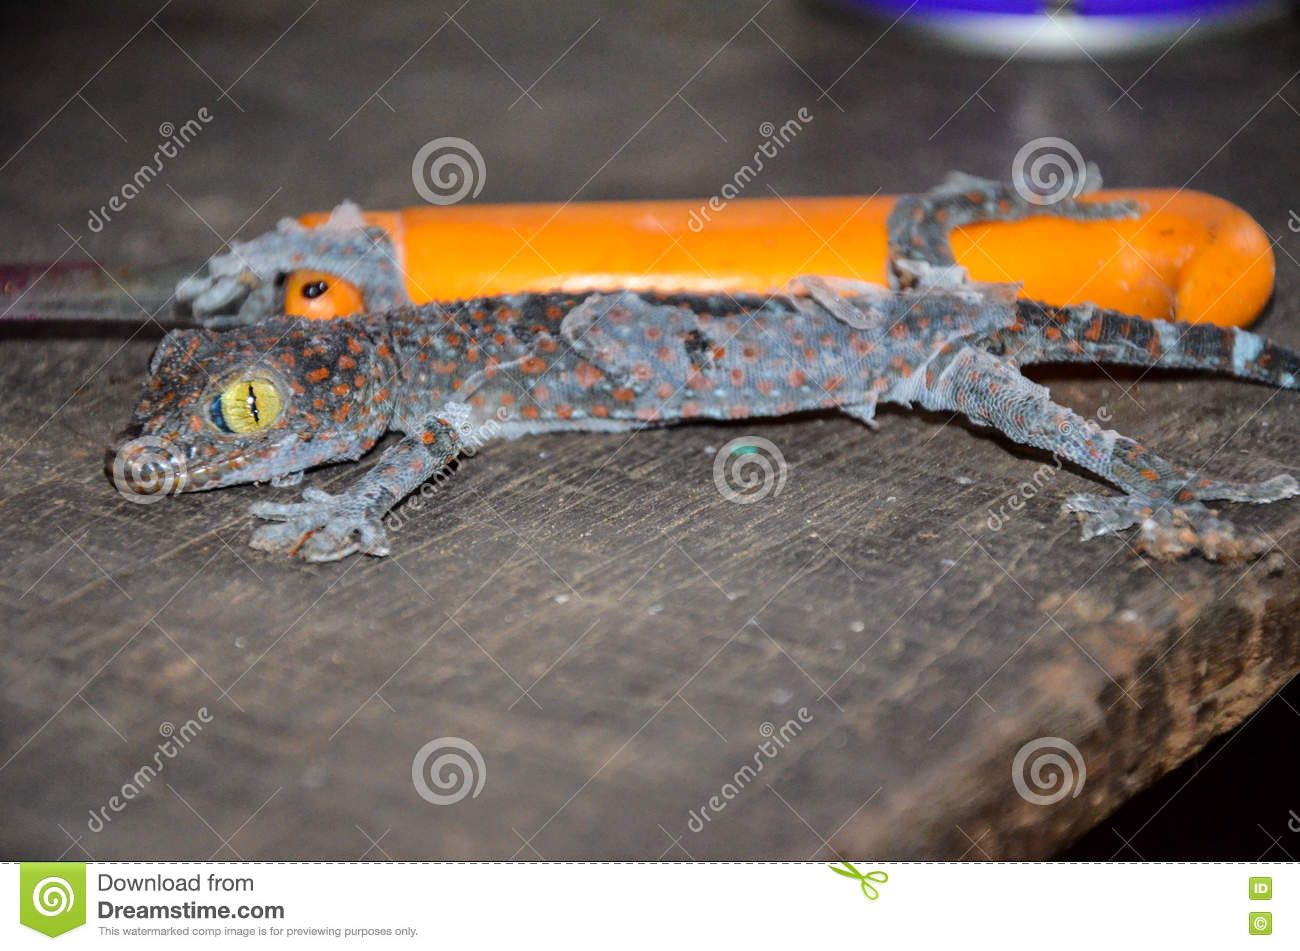 Close up gecko molting off the old skin on an old wooden table